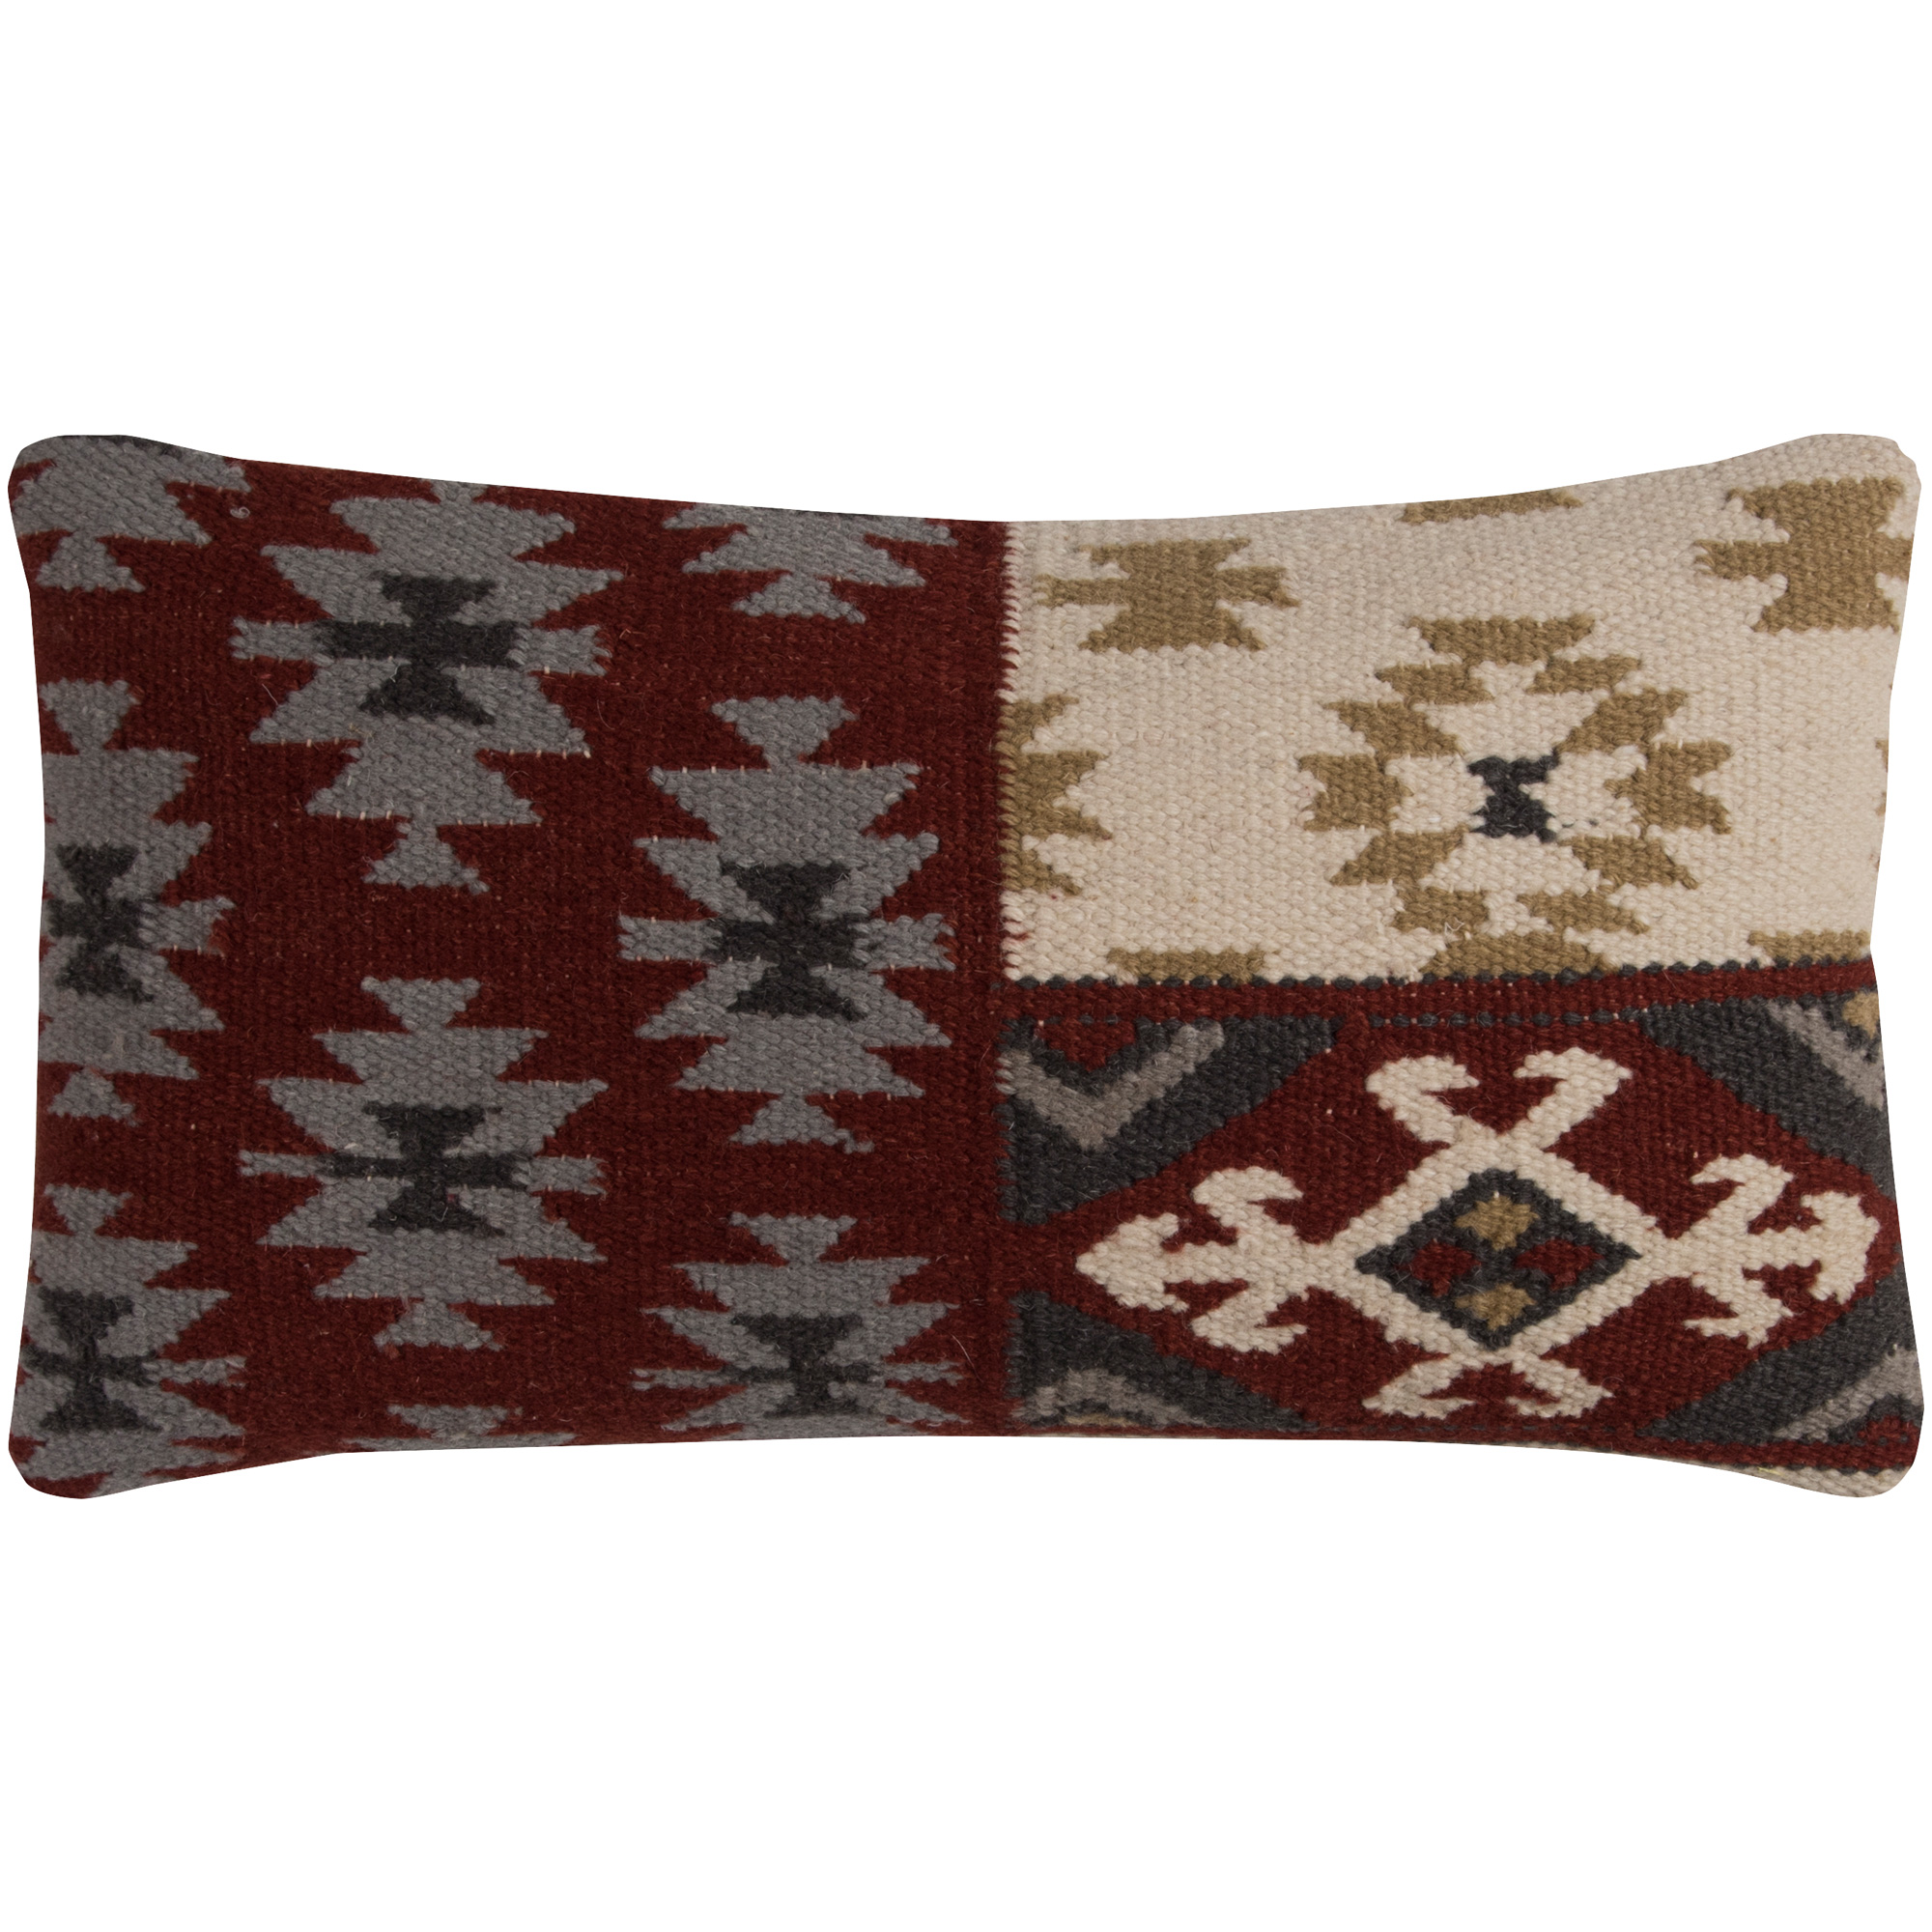 Rizzy Home | Aztec Mission Red Oblong Down Pillow